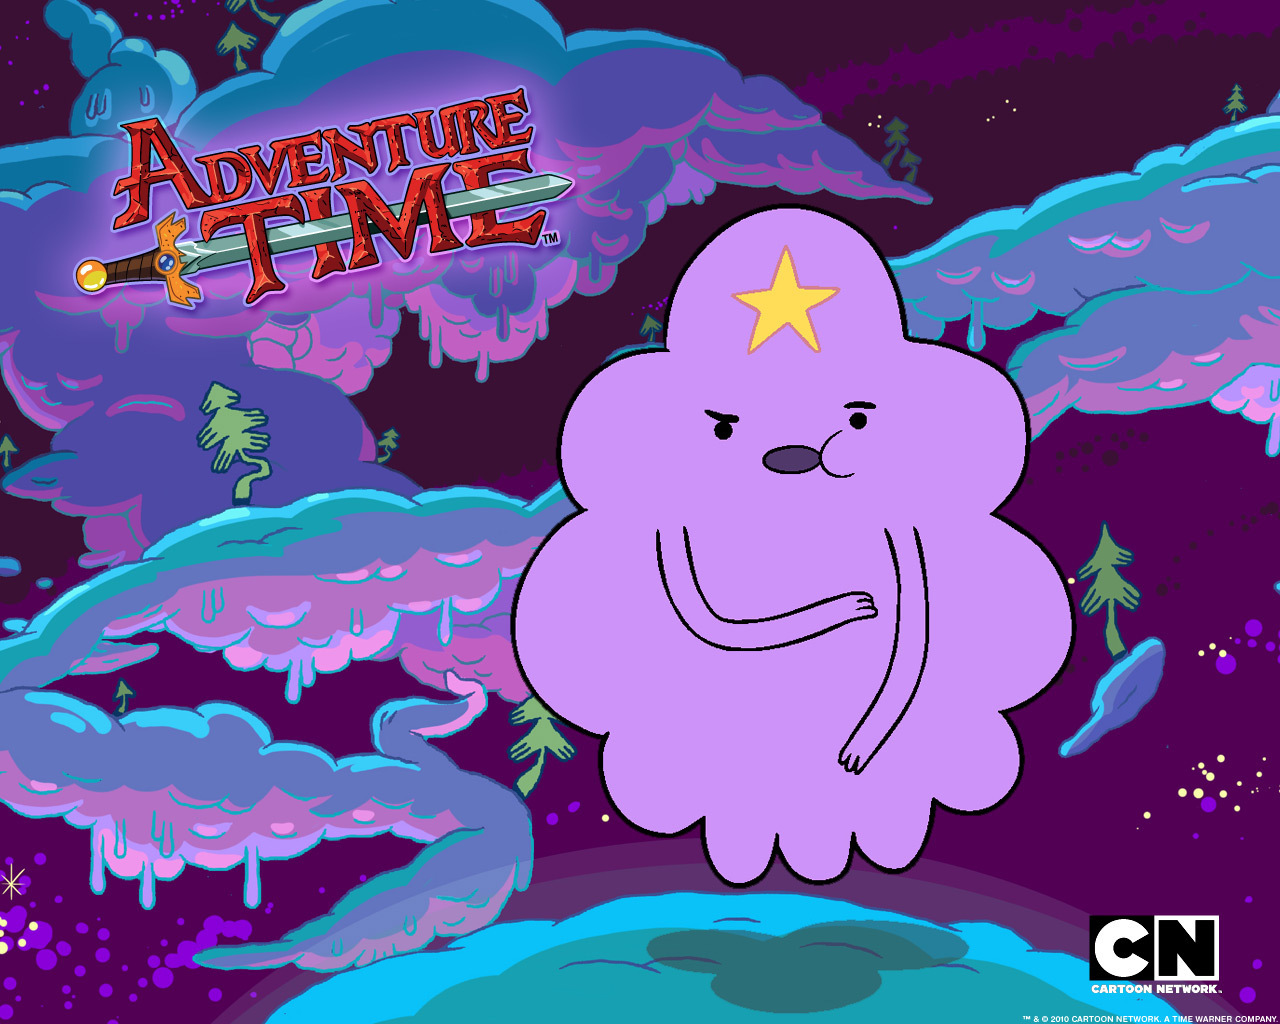 Iam567 images Adventure Time HD wallpaper and background photos